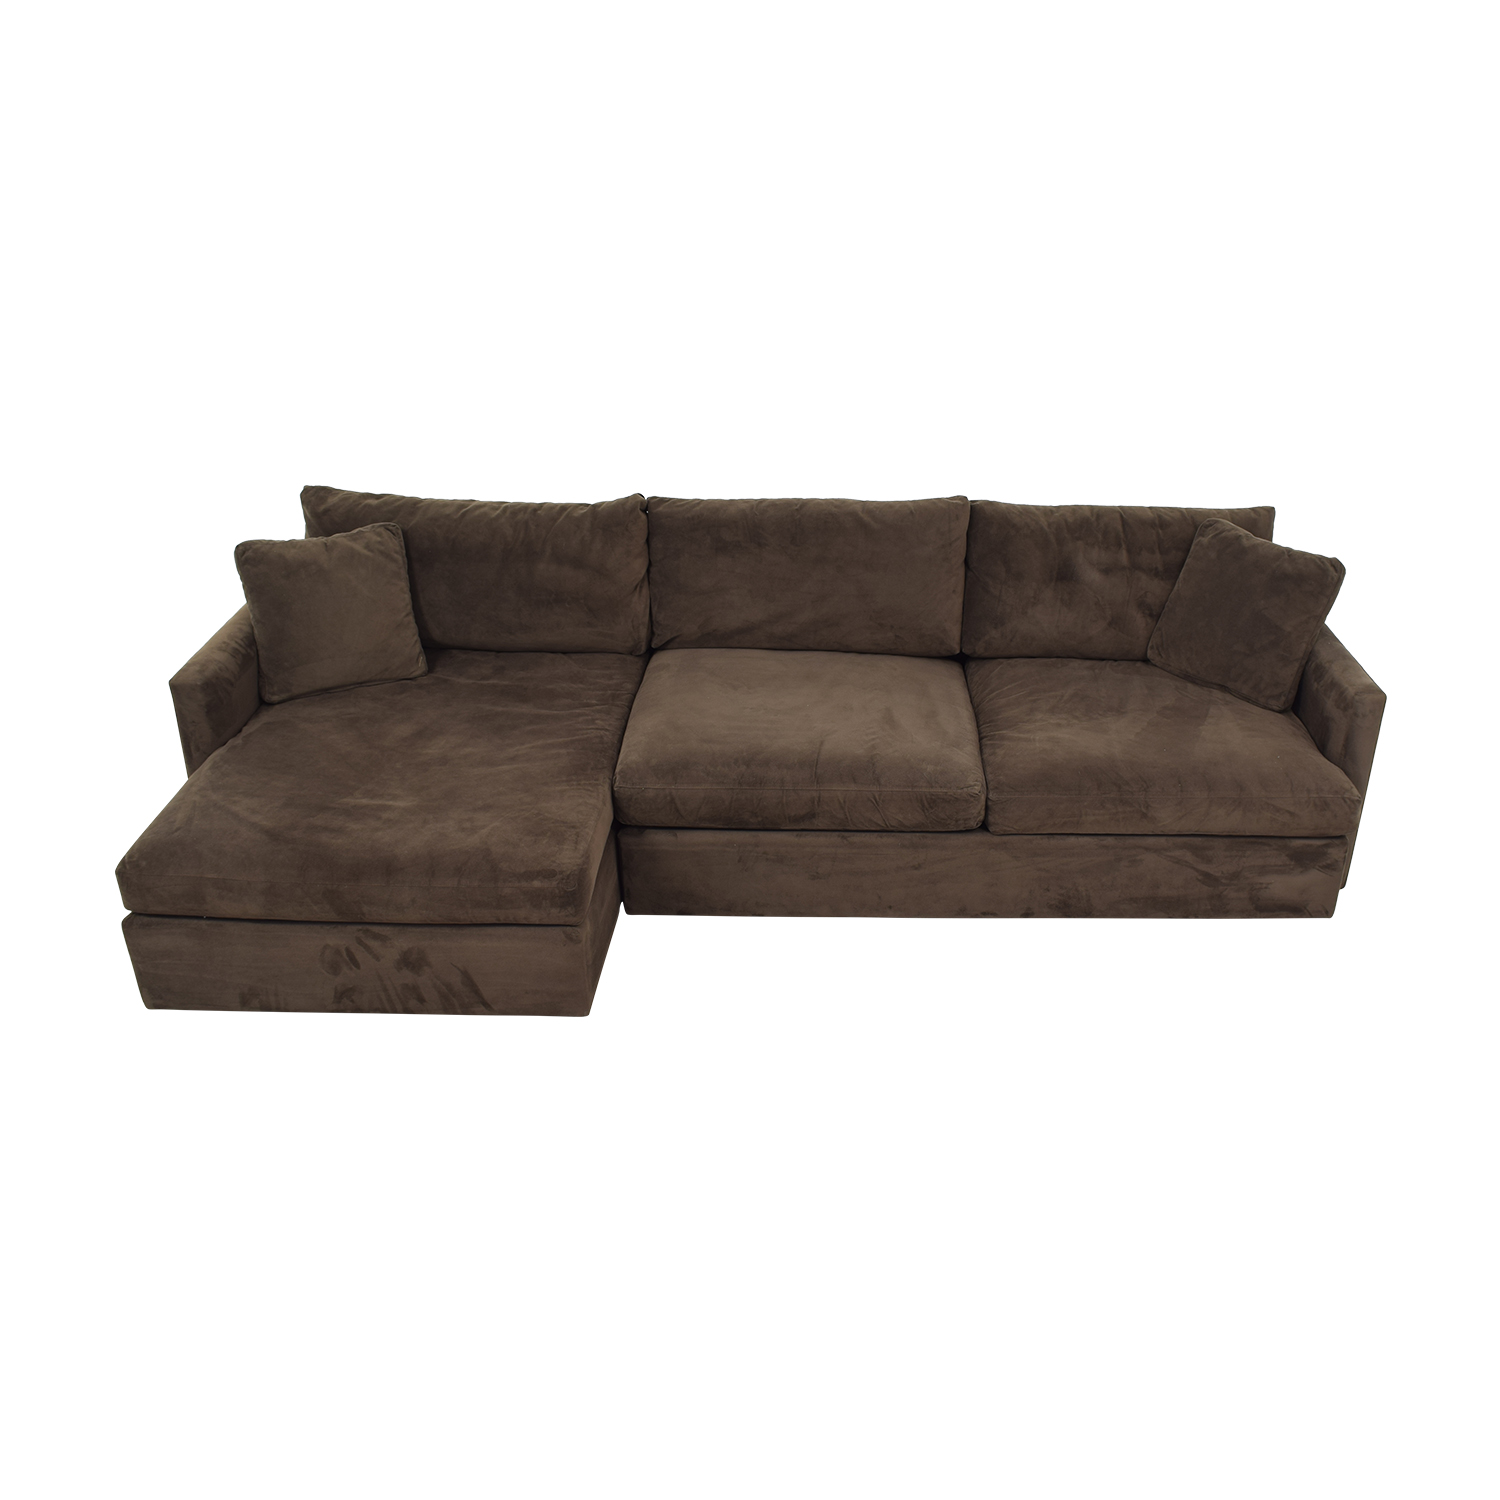 Crate & Barrel Sofa Sectional with Chaise / Sectionals